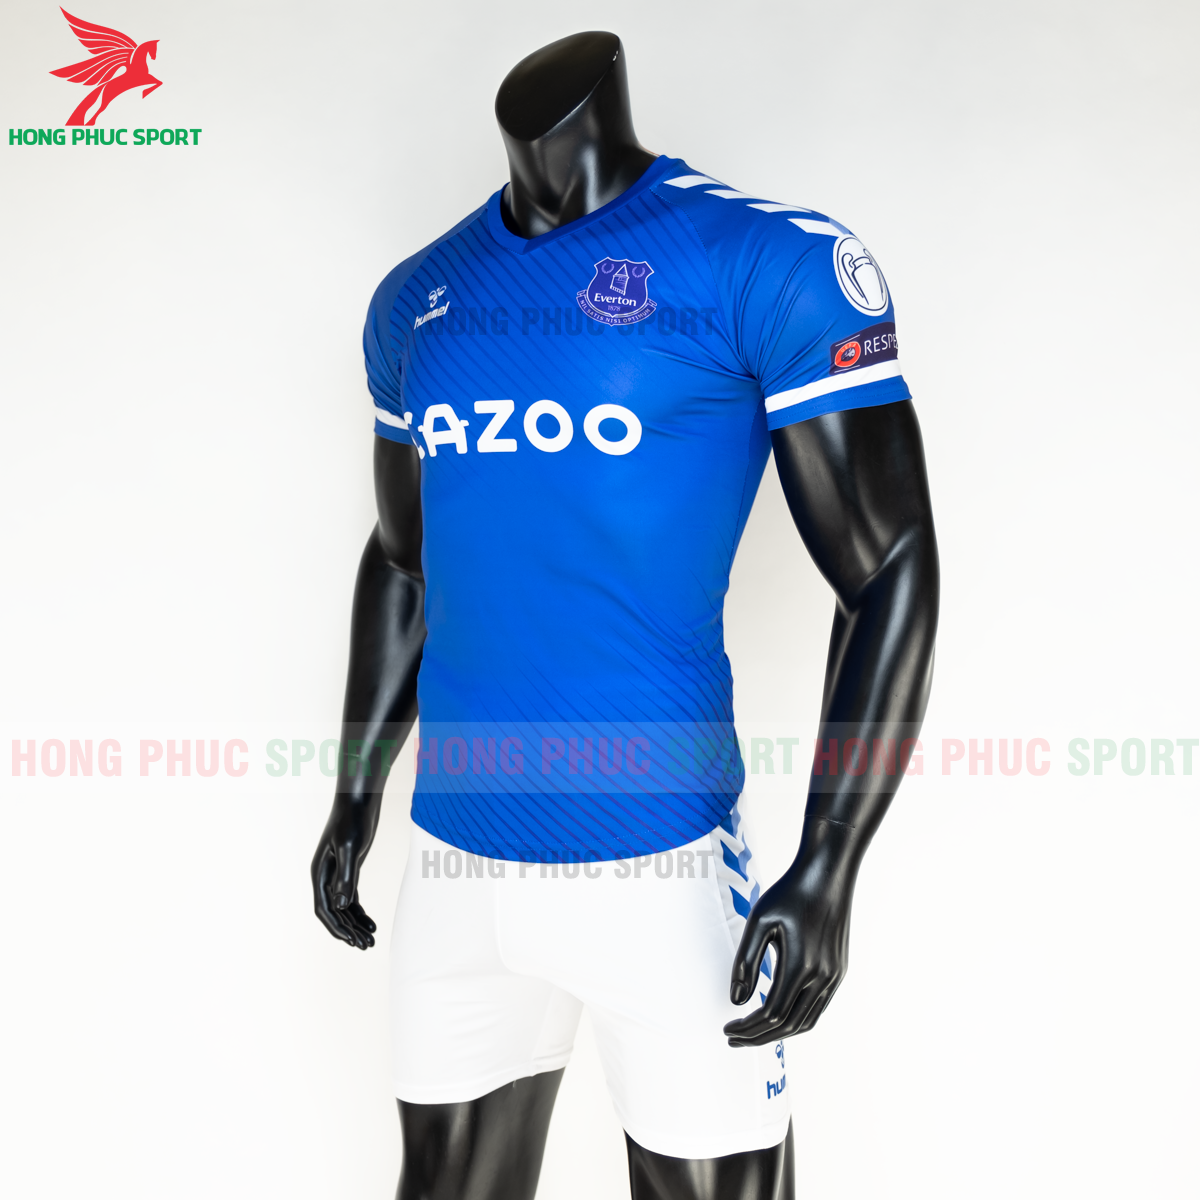 https://cdn.hongphucsport.com/unsafe/s4.shopbay.vn/files/285/ao-da-bong-san-nha-everton-2020-2021-4-5fe1c82c9d560.png